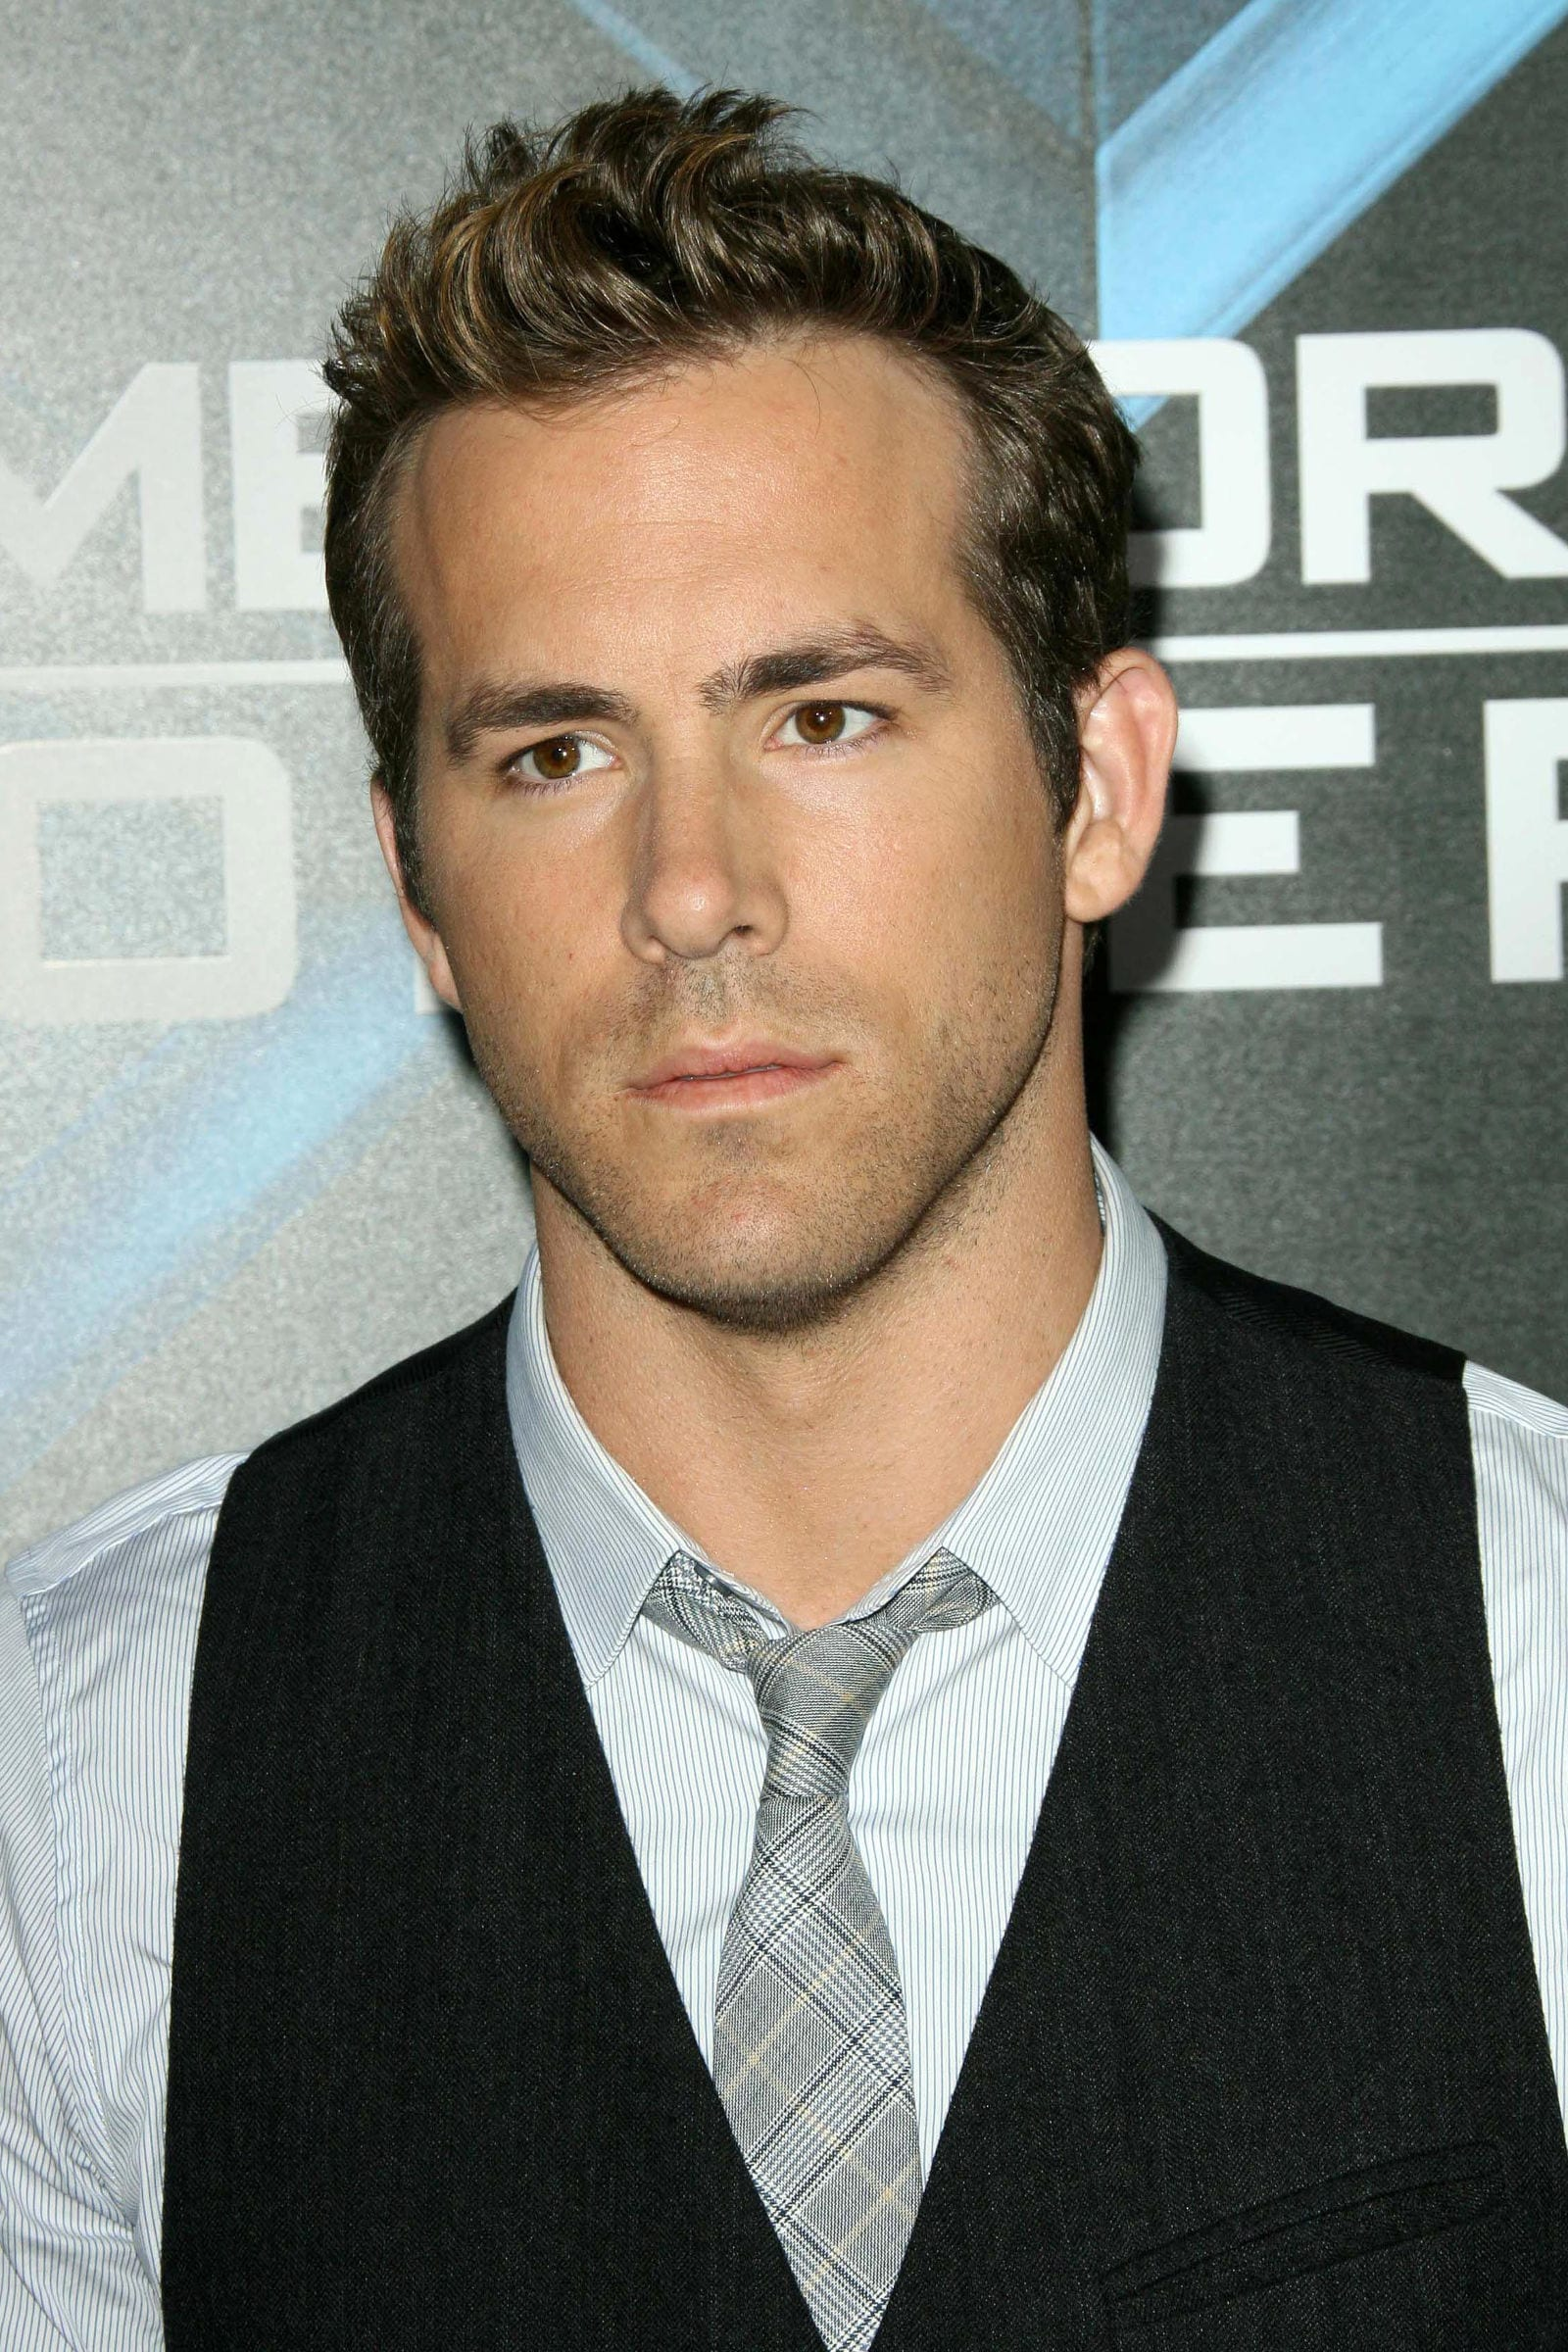 Ryan Reynolds regular cut